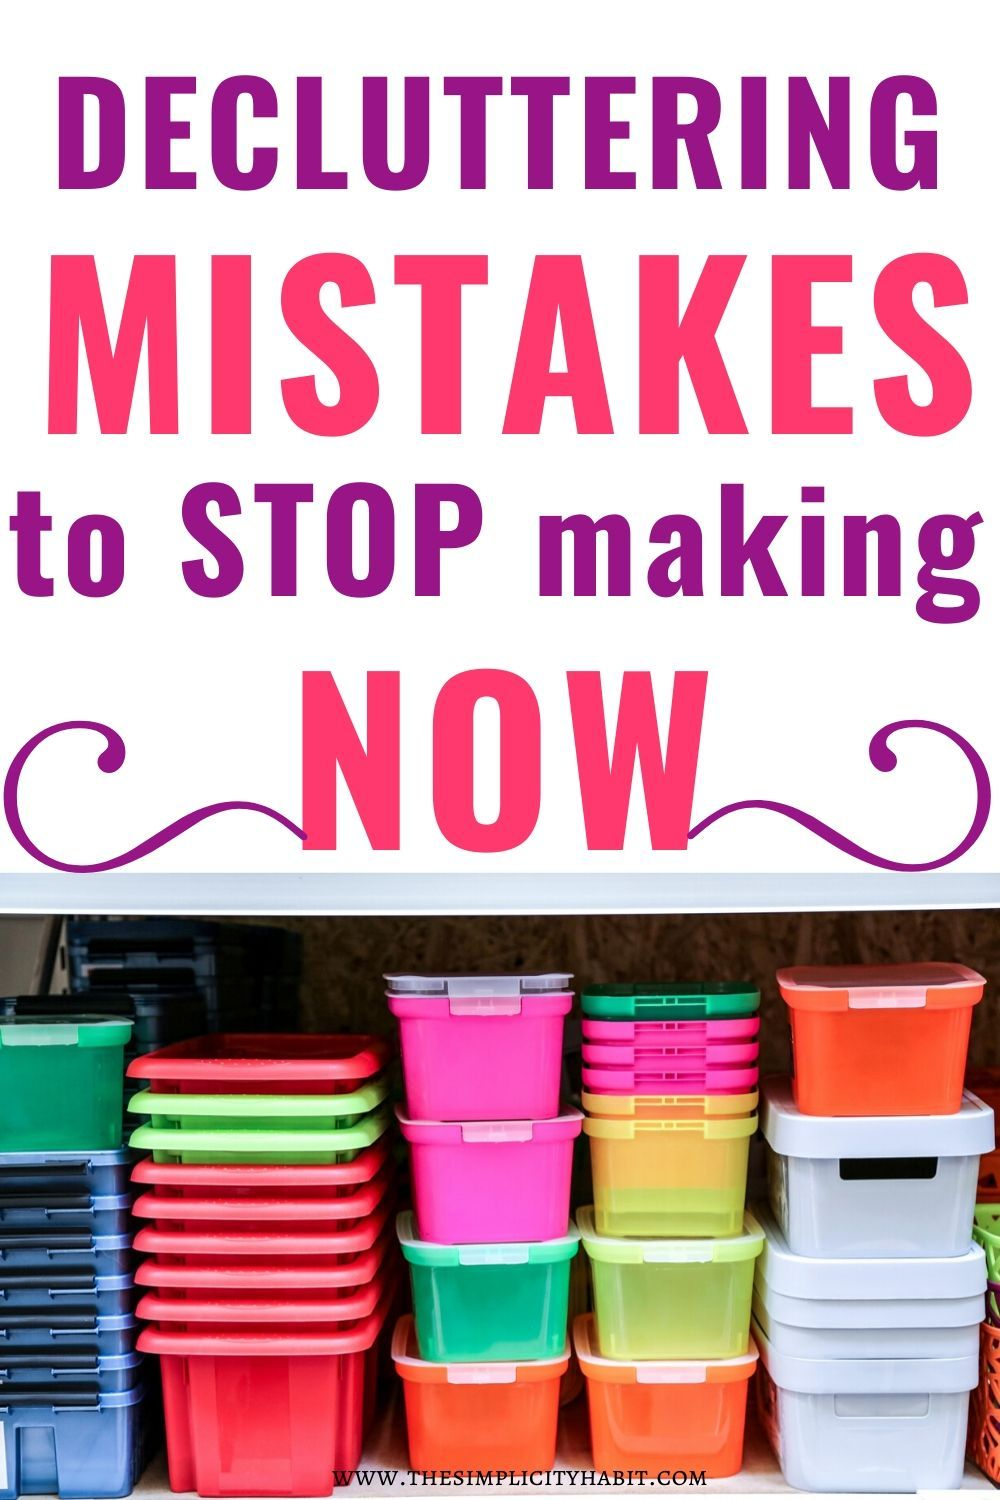 Decluttering mistakes to stop making now